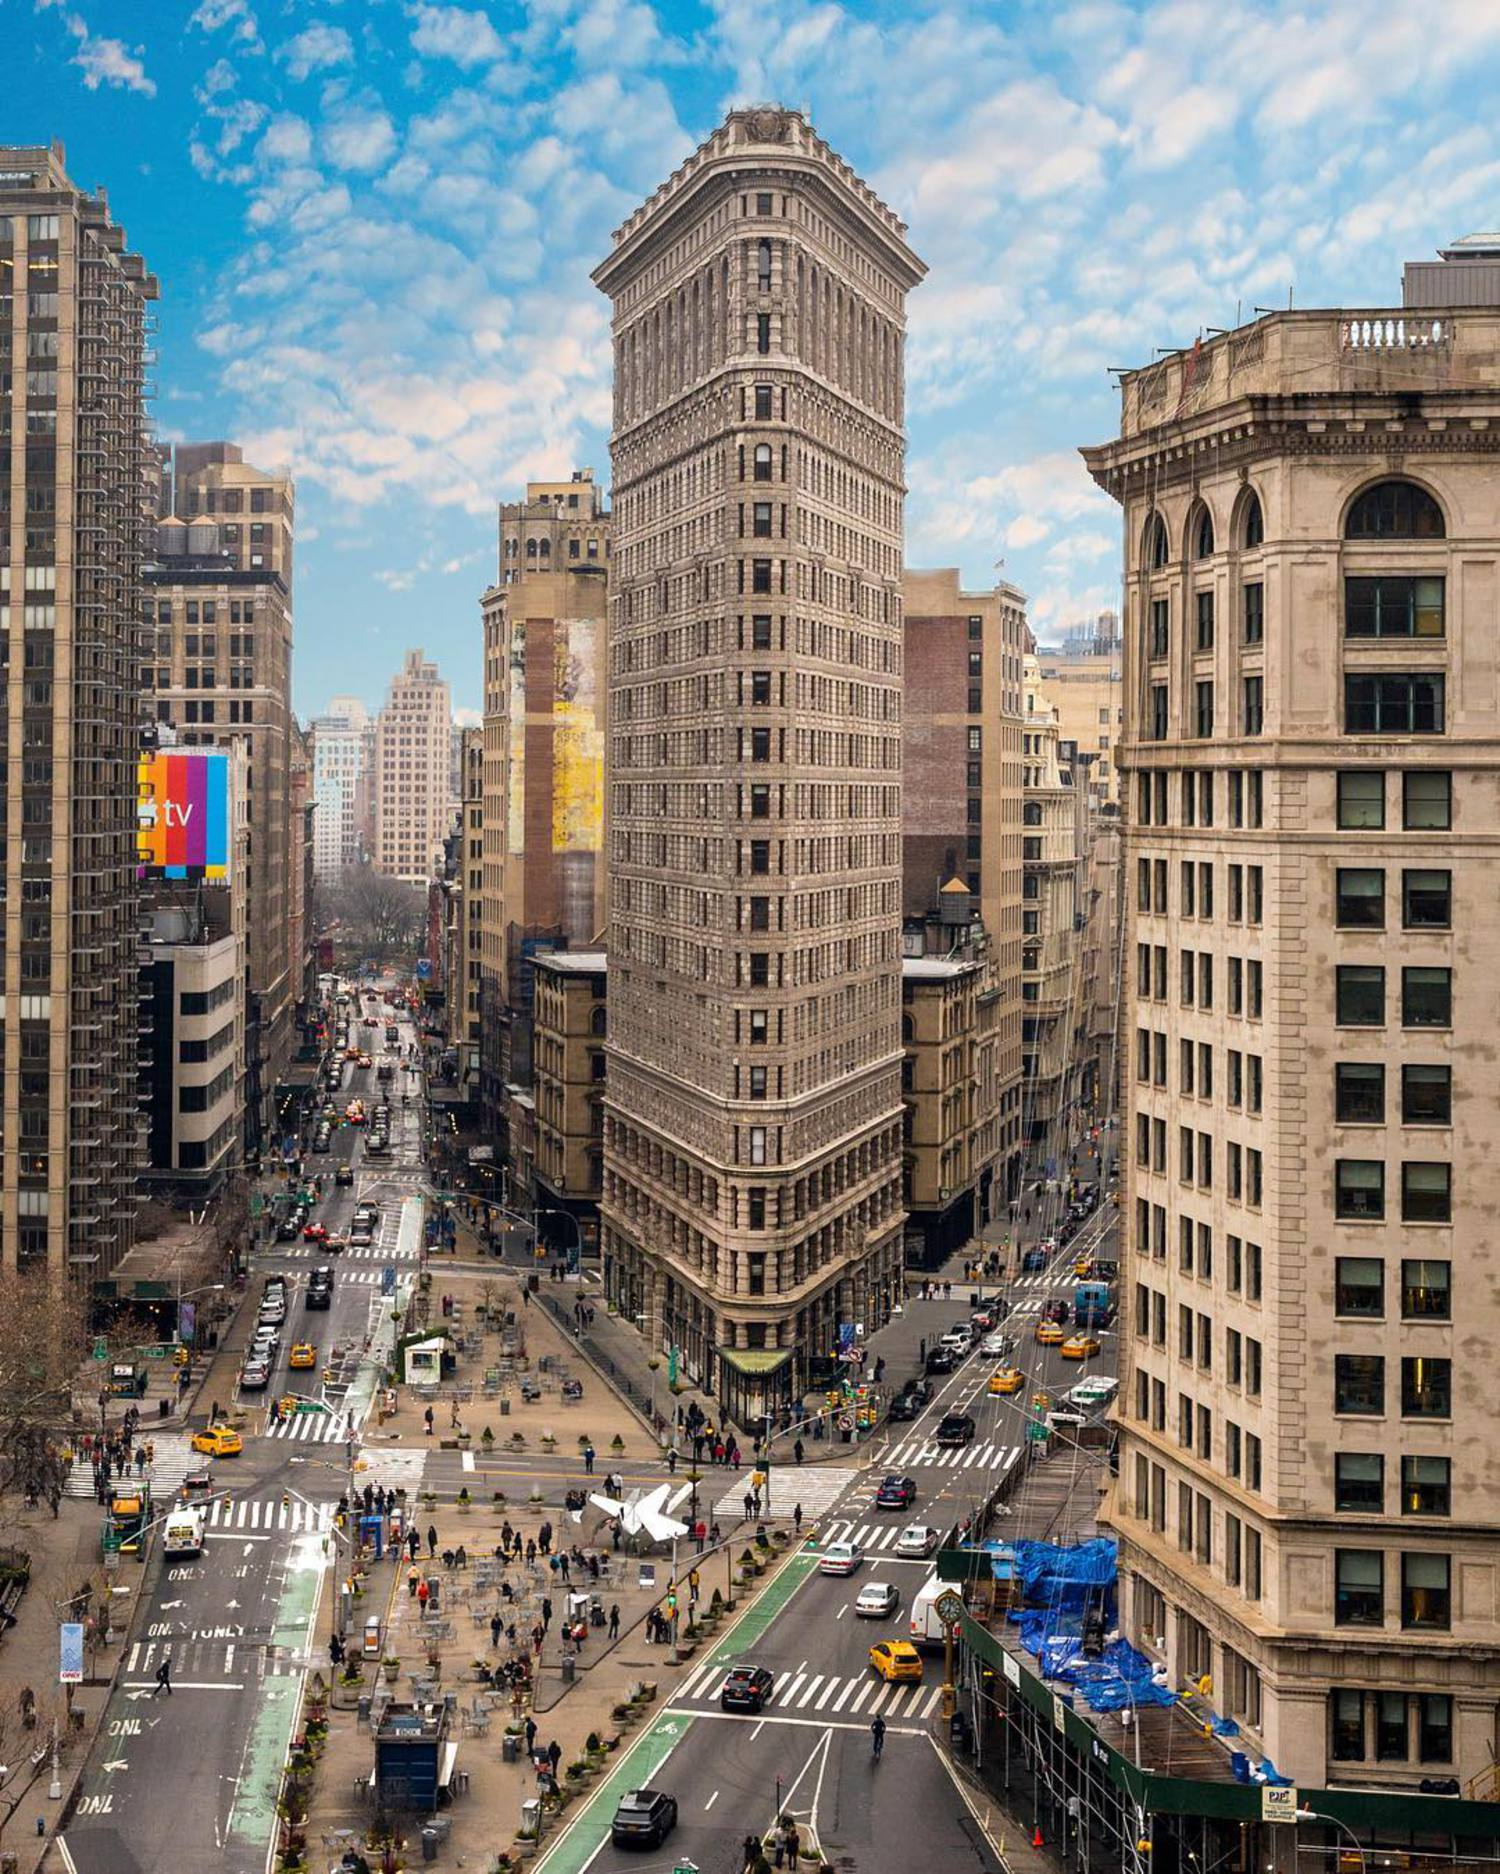 Left or right??? The Flat Iron building, one of New York's most iconic buildings. ==================================== #beautifuldestinations #thebestdestinations #awesome_earthpics #travelawesome #bestvacations #wonderful_places #discoverglobe  #aroundtheworldpix #tourtheplanet #tlpicks #nakedplanet #greatesttravels  #letsgosomewhere #global_hotshotz #bestplacestogo #ourplanetdaily #natgeotravel #awesomeearth #roamtheplanet #itsamazingoutthere #canon_photos #wildernessculture #welivetoexplore #all2epic #photographer #destinationearth #awesomepix #theglobewander #fantastic_earth #teamcanon